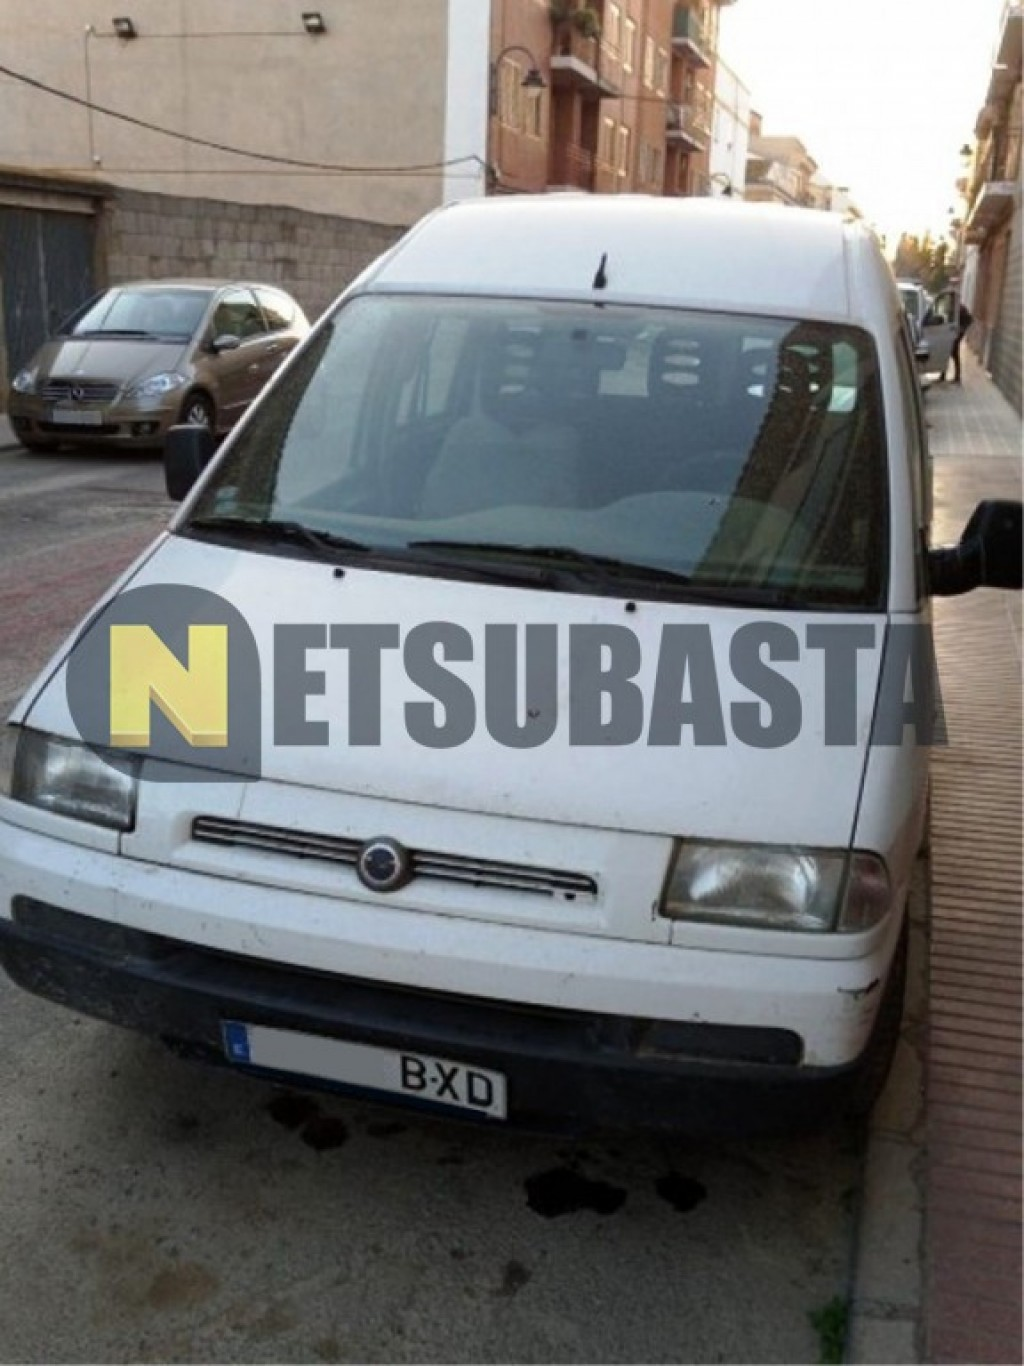 subasta de fiat scudo 2 0jtd combi 2002. Black Bedroom Furniture Sets. Home Design Ideas